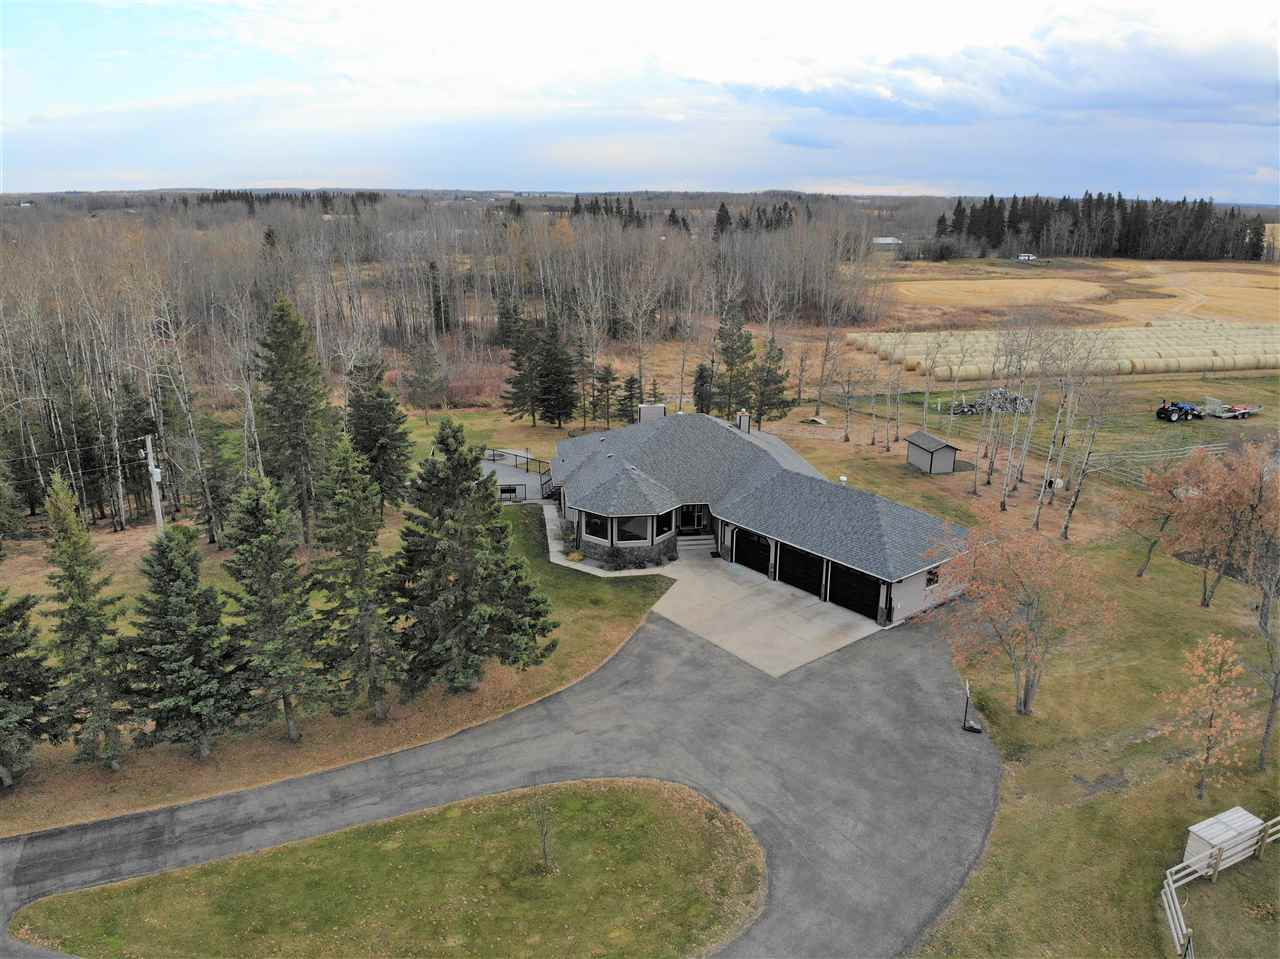 AMAZING Property & Location only 2 miles from town limits & less than a minute from Barrheads Premier 18 hole golf & country club. Modern & attractive 2035 sq ft bungalow built into the hillside w/ stylishly updated fully finished walk out bsmnt. Triple bay attached & heated oversize garage. Great open concept main living areas w/ space that can't be beat. Quality materials top to bottom including extensive new high end cork floors & more. Convenient main flr laundry & grade level entrance on both floors will make this home a reality from the raising of your family right into your twilight years ahead. Imagine the evenings & weekends watching the kids play or enjoying a peaceful country night from your expansive two tier BBQ & entertainment decks overlooking the privately sheltered back yard & fire pit areas. Unheard of 3.5 acres of post beam & chain link fenced pasture for any assortment of family animals. Too much to list & So Much to See in this fully finished package that your dreams will be made of